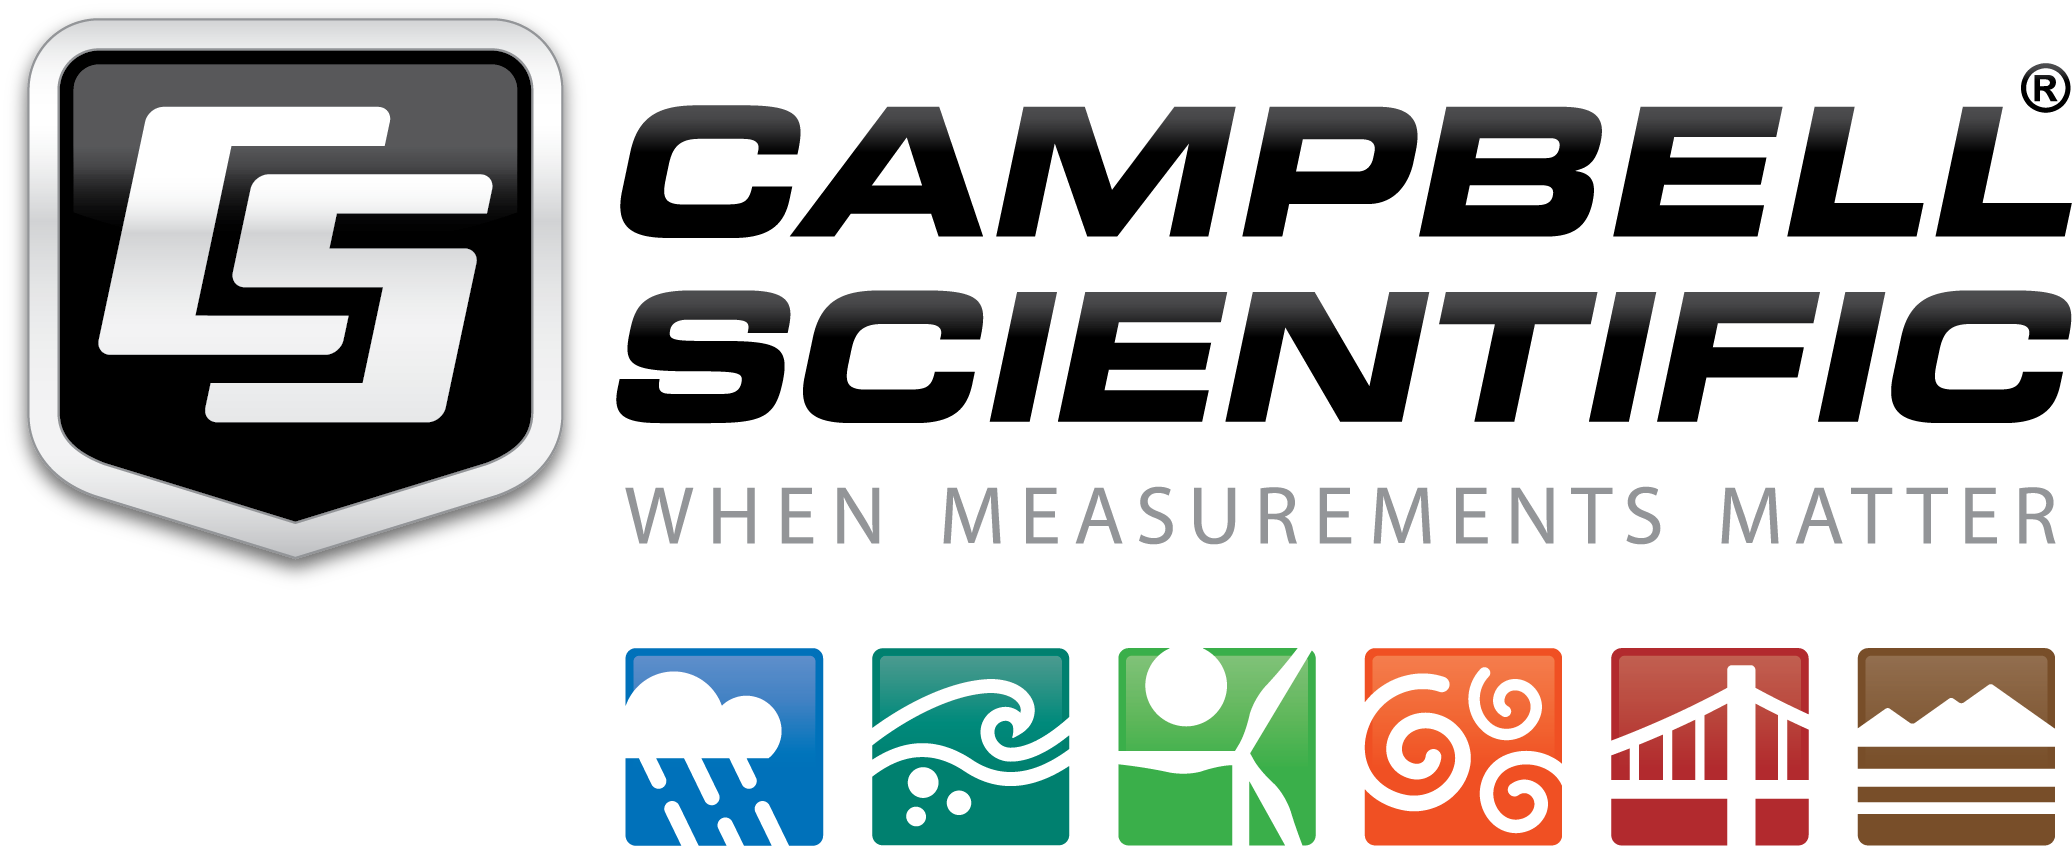 Campbell Scientific, Inc., США